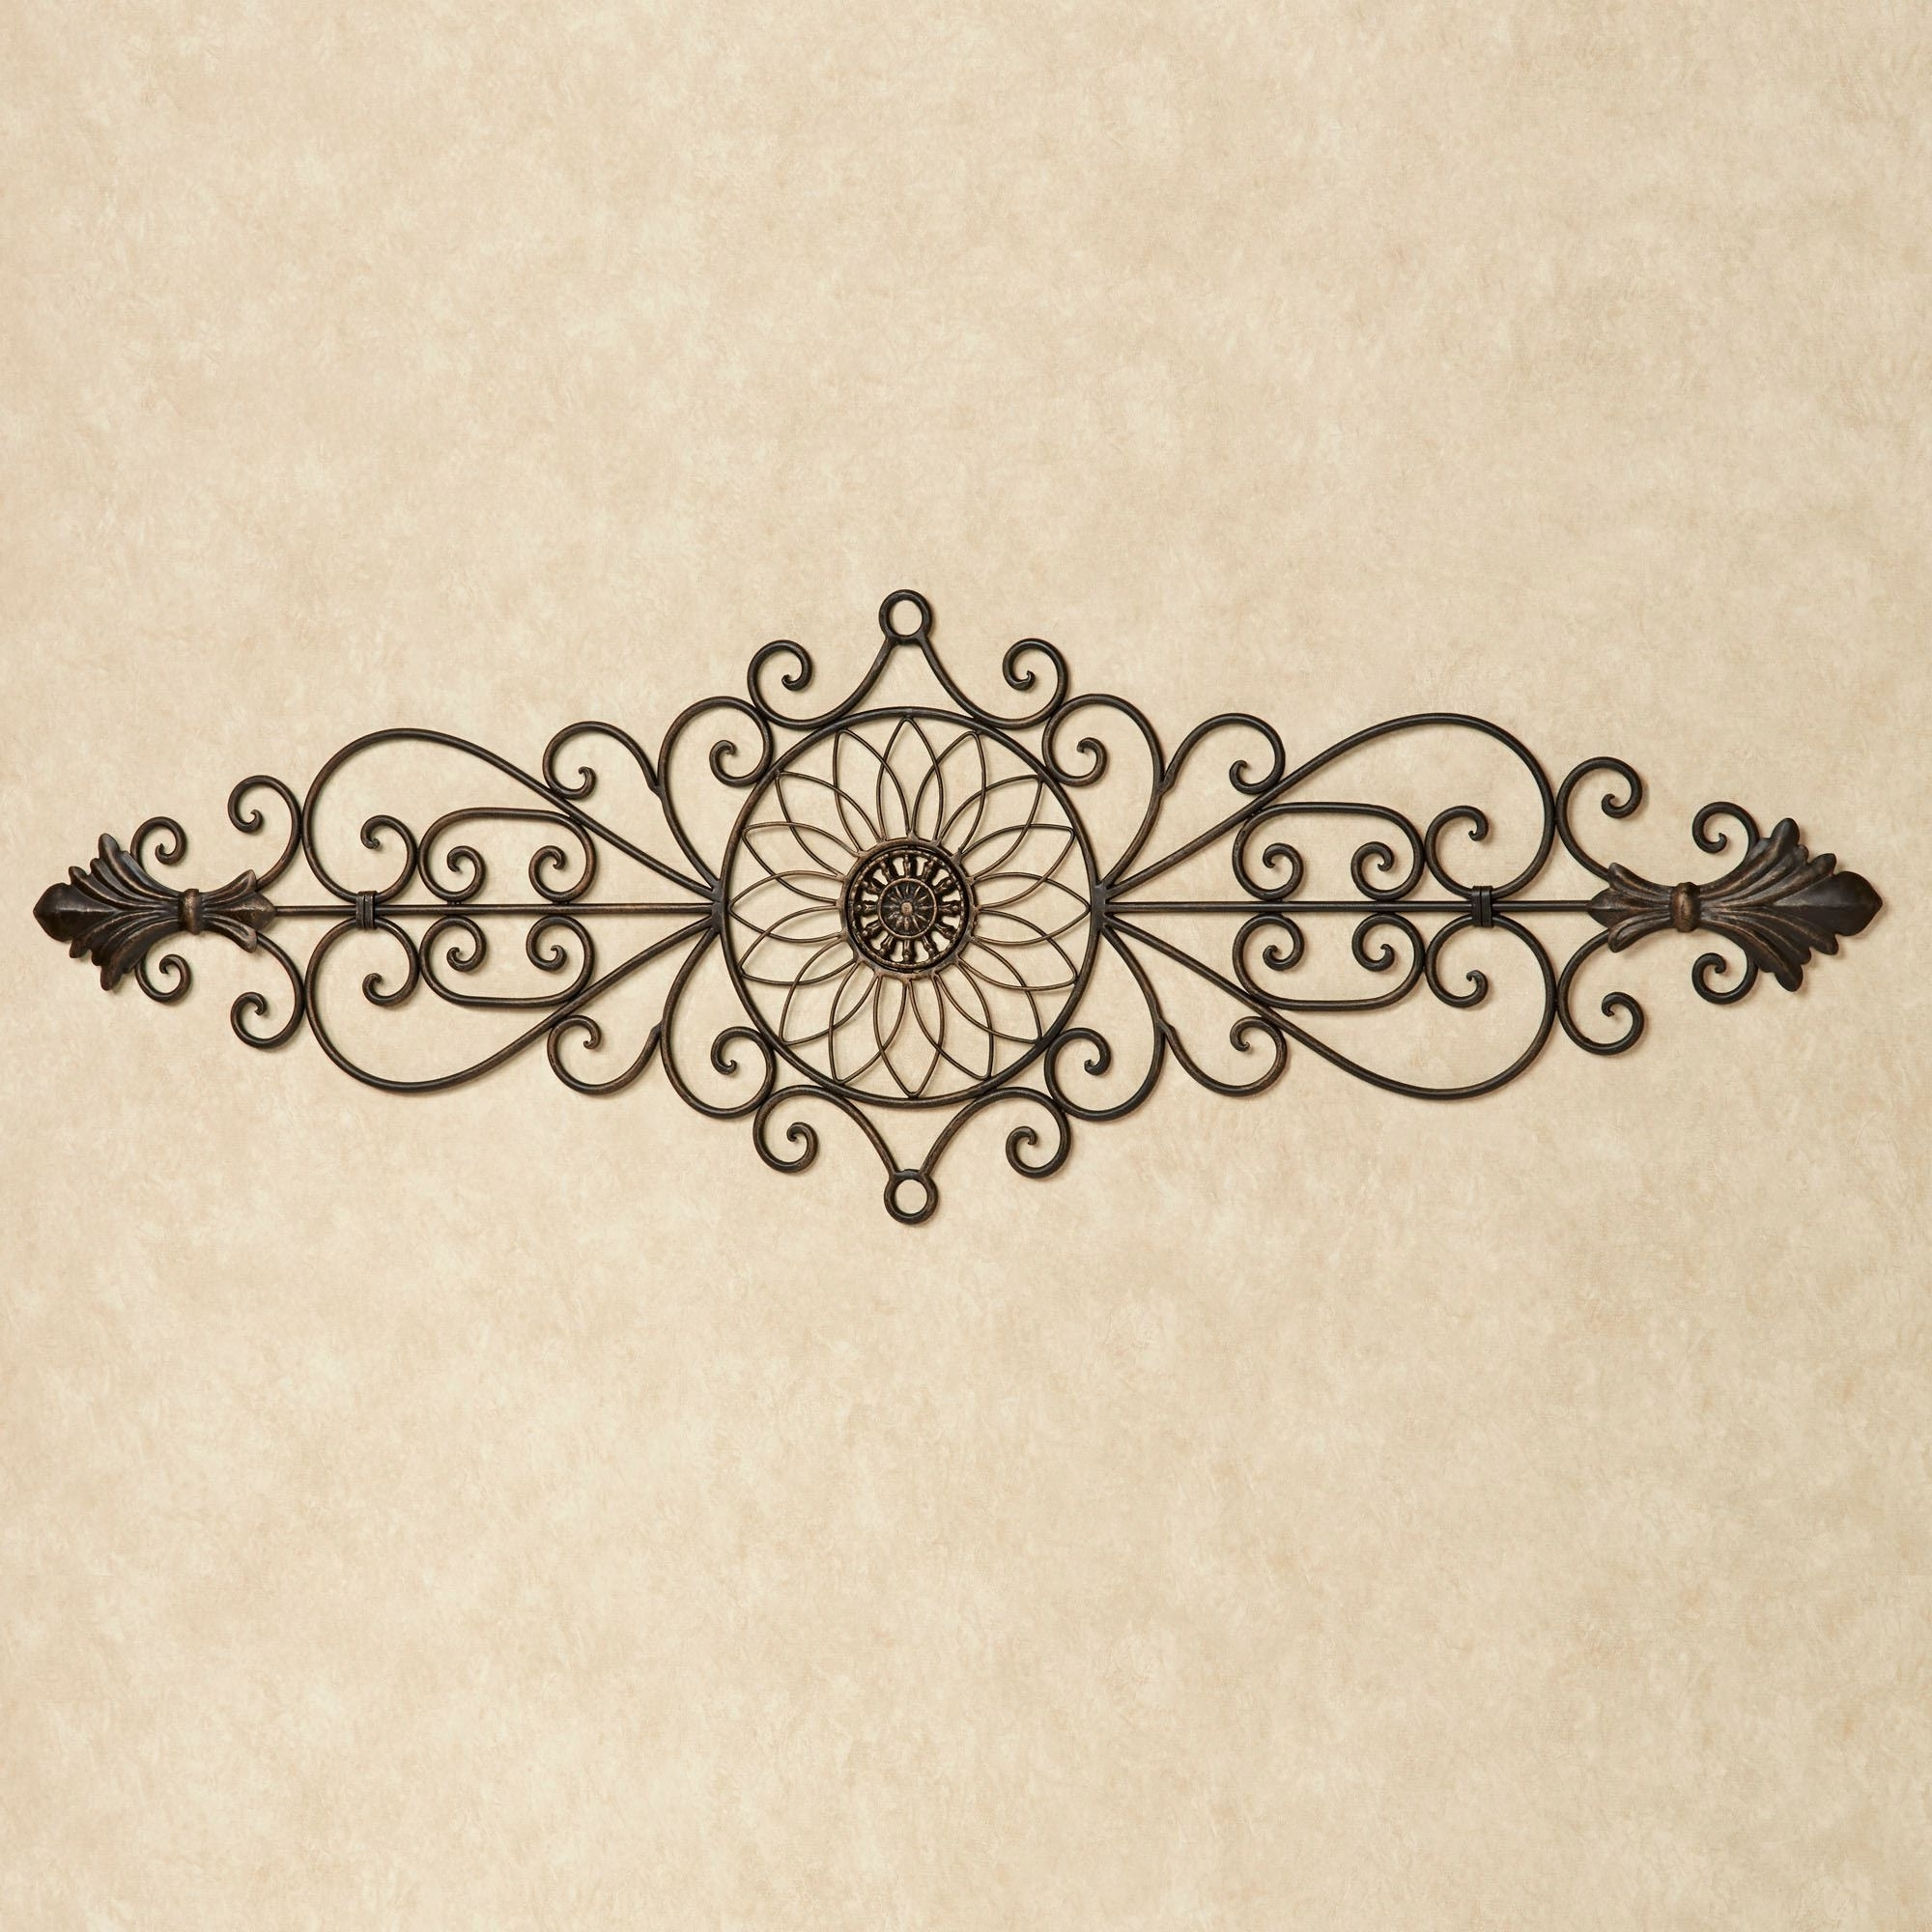 Trendy Italian Outdoor Wall Art For Bedroom : Iron Wall Hangings Wall Plate Outdoor Wall Hangings (View 14 of 15)